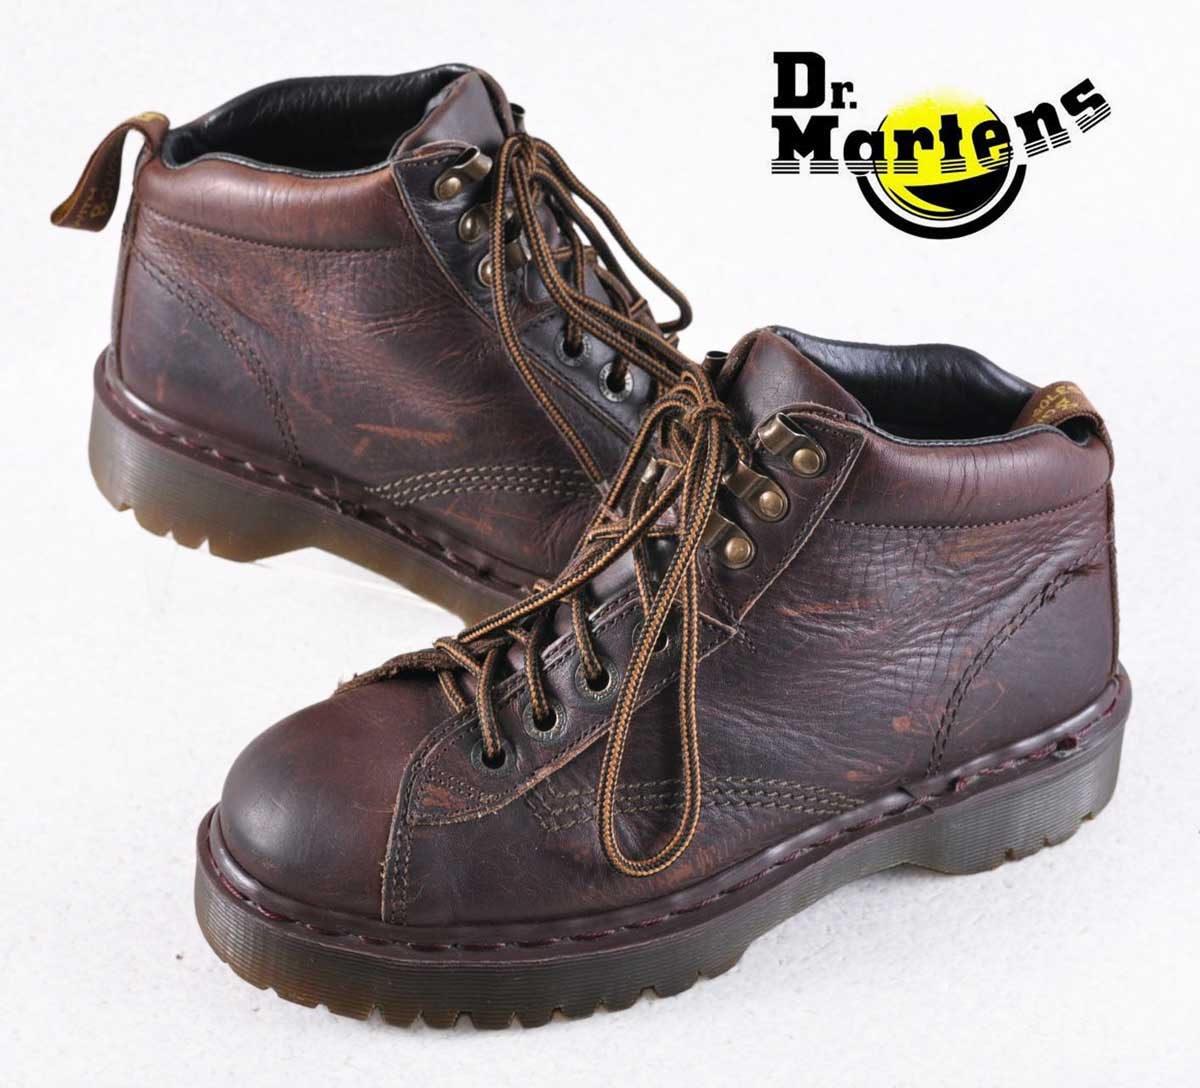 74fcd9e66a17e England vintage   Dr.martens Martens   wedge sole thickness bottom and  monkey boots and dark brown leather   UK6-JPN25.0cm